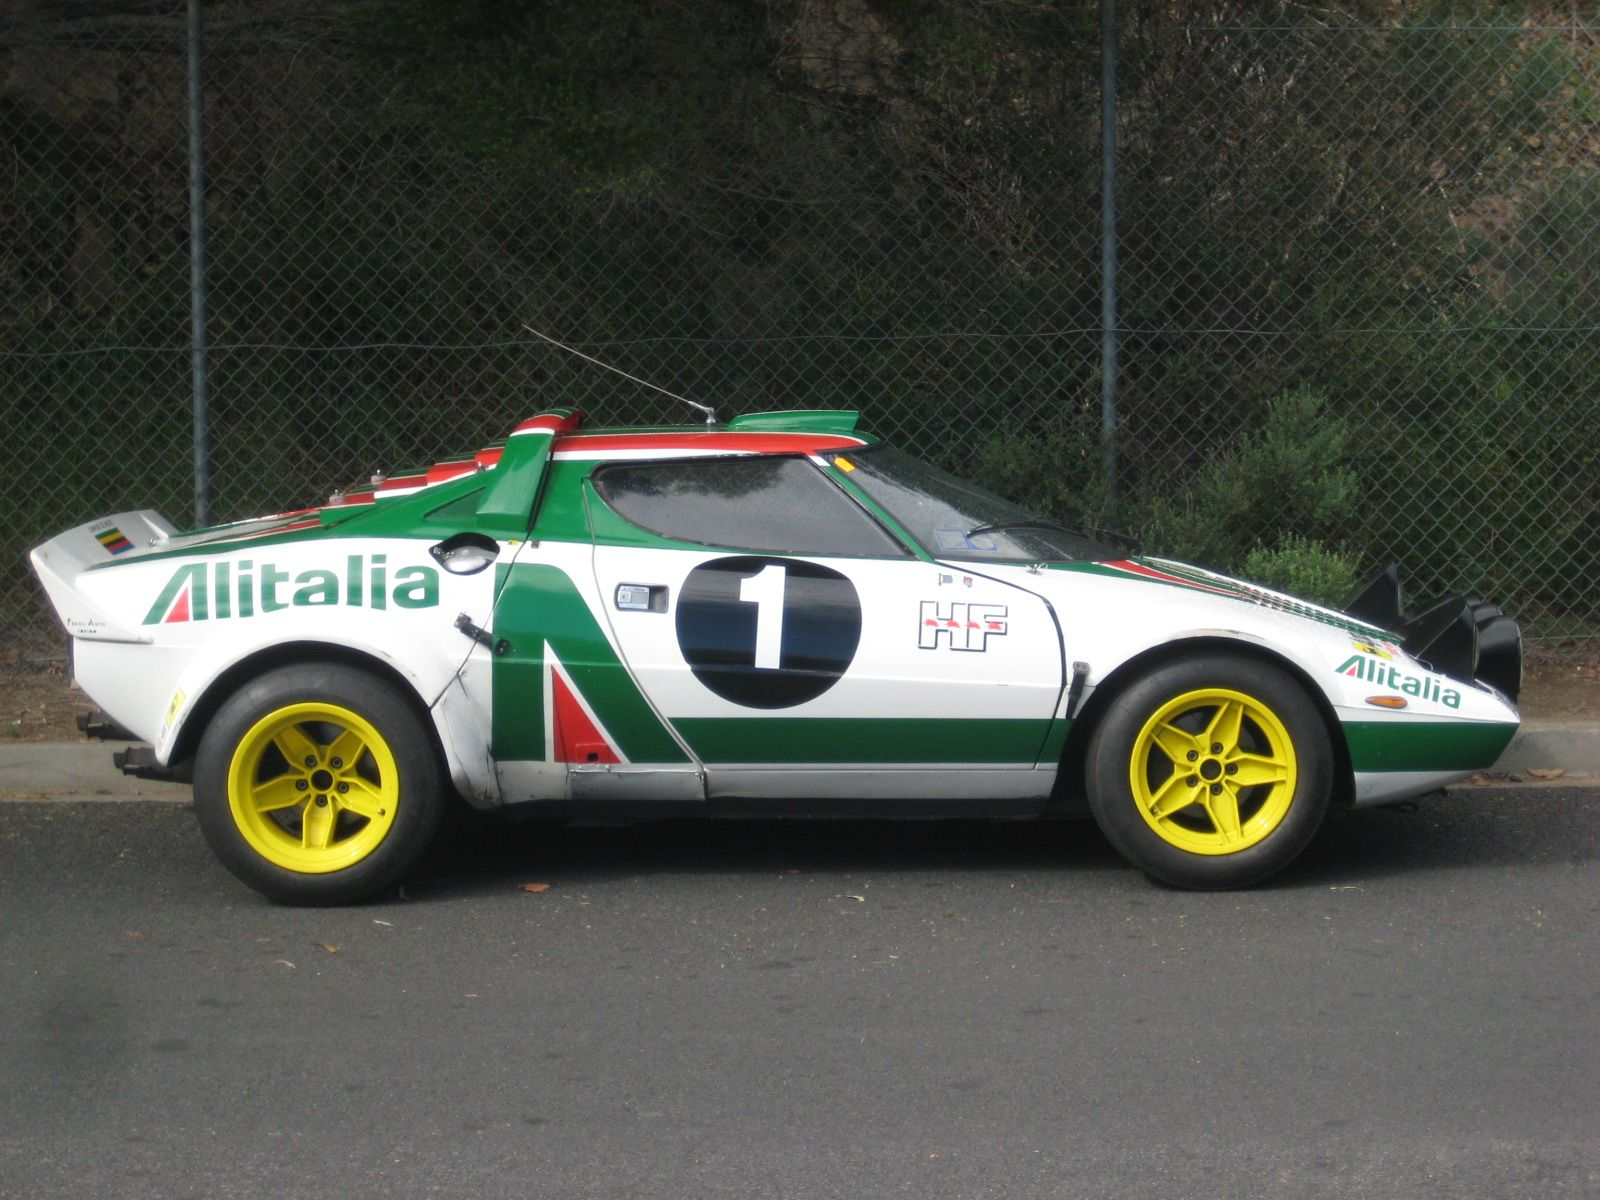 lancia stratos - google 検索 | cars | pinterest | cars, hot cars and